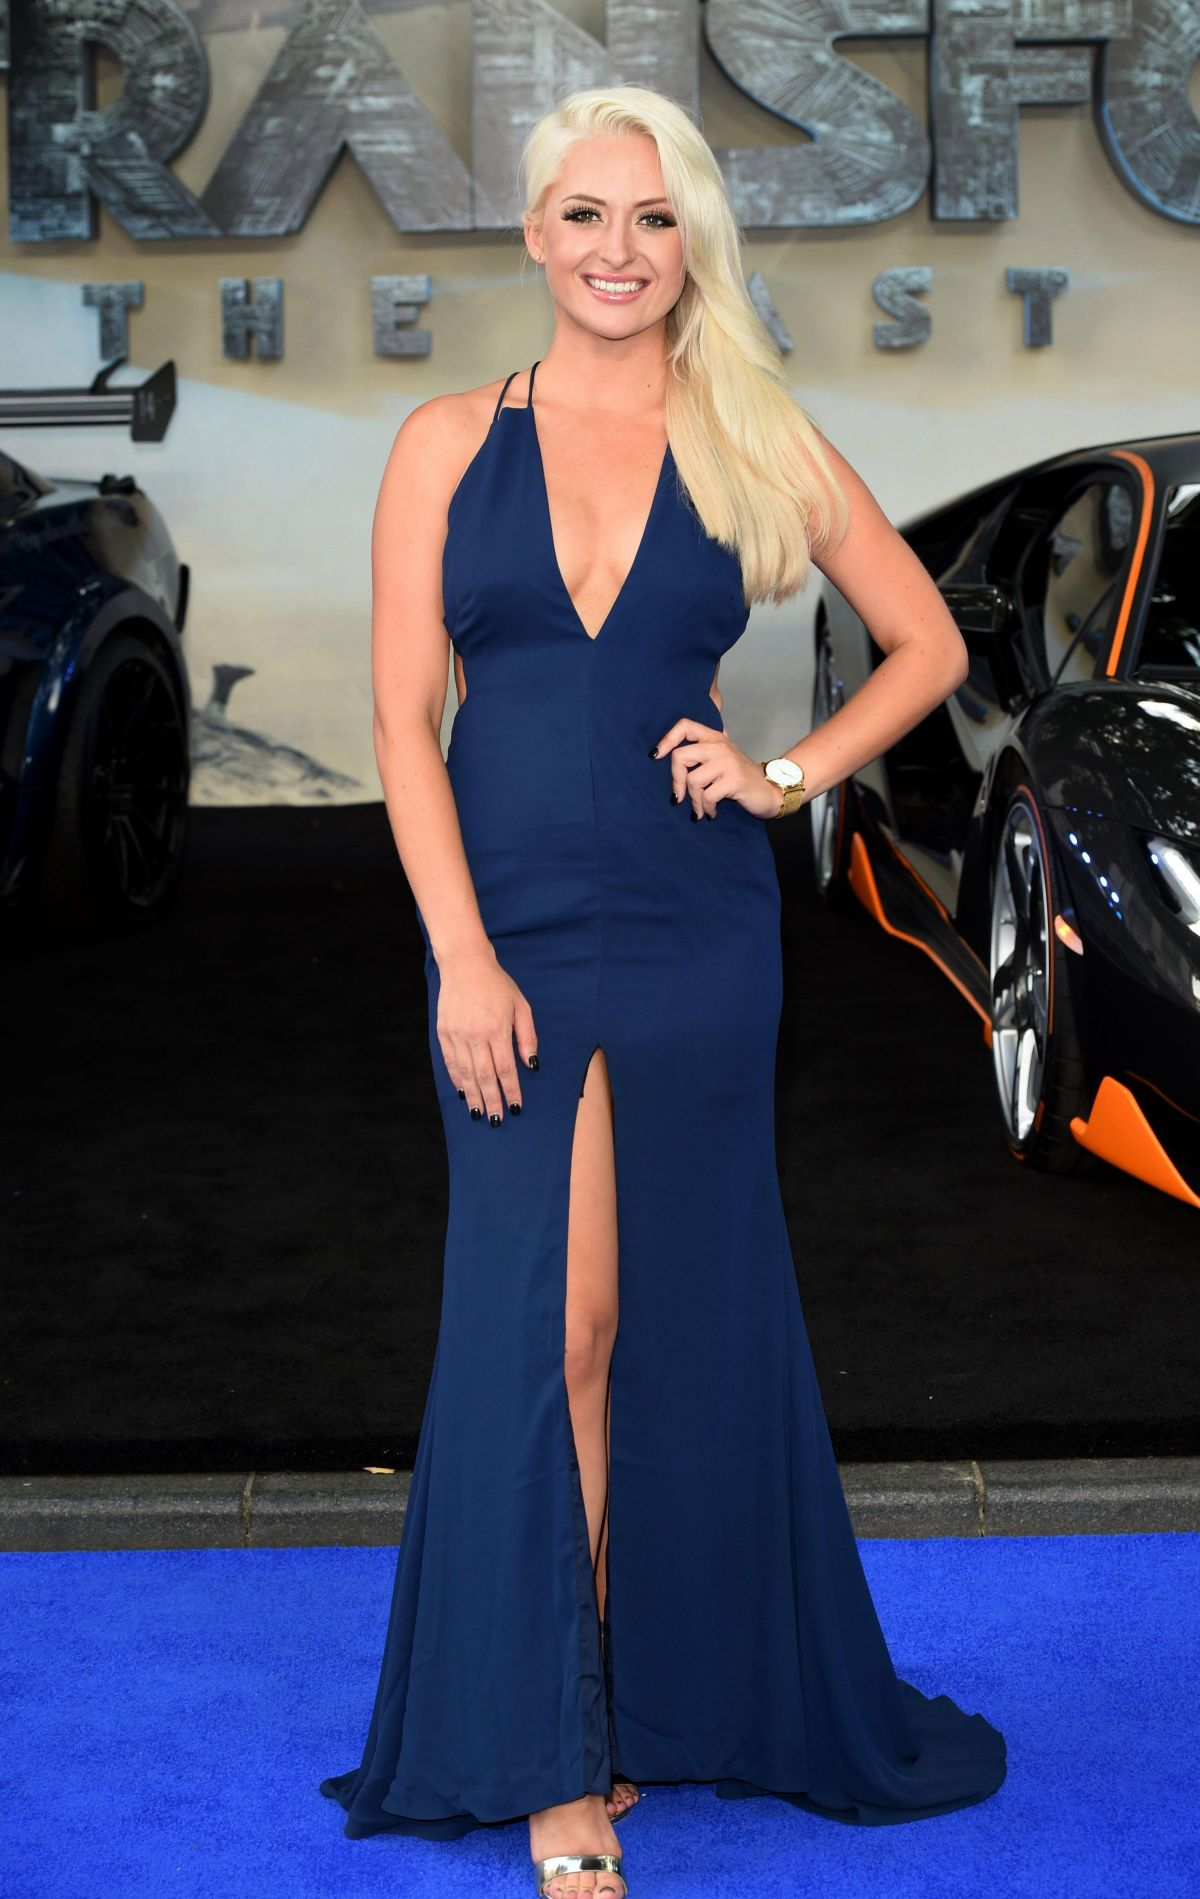 CHLOE PAIGE at Transformers: The Last Knight Premiere in London 06/18/2017